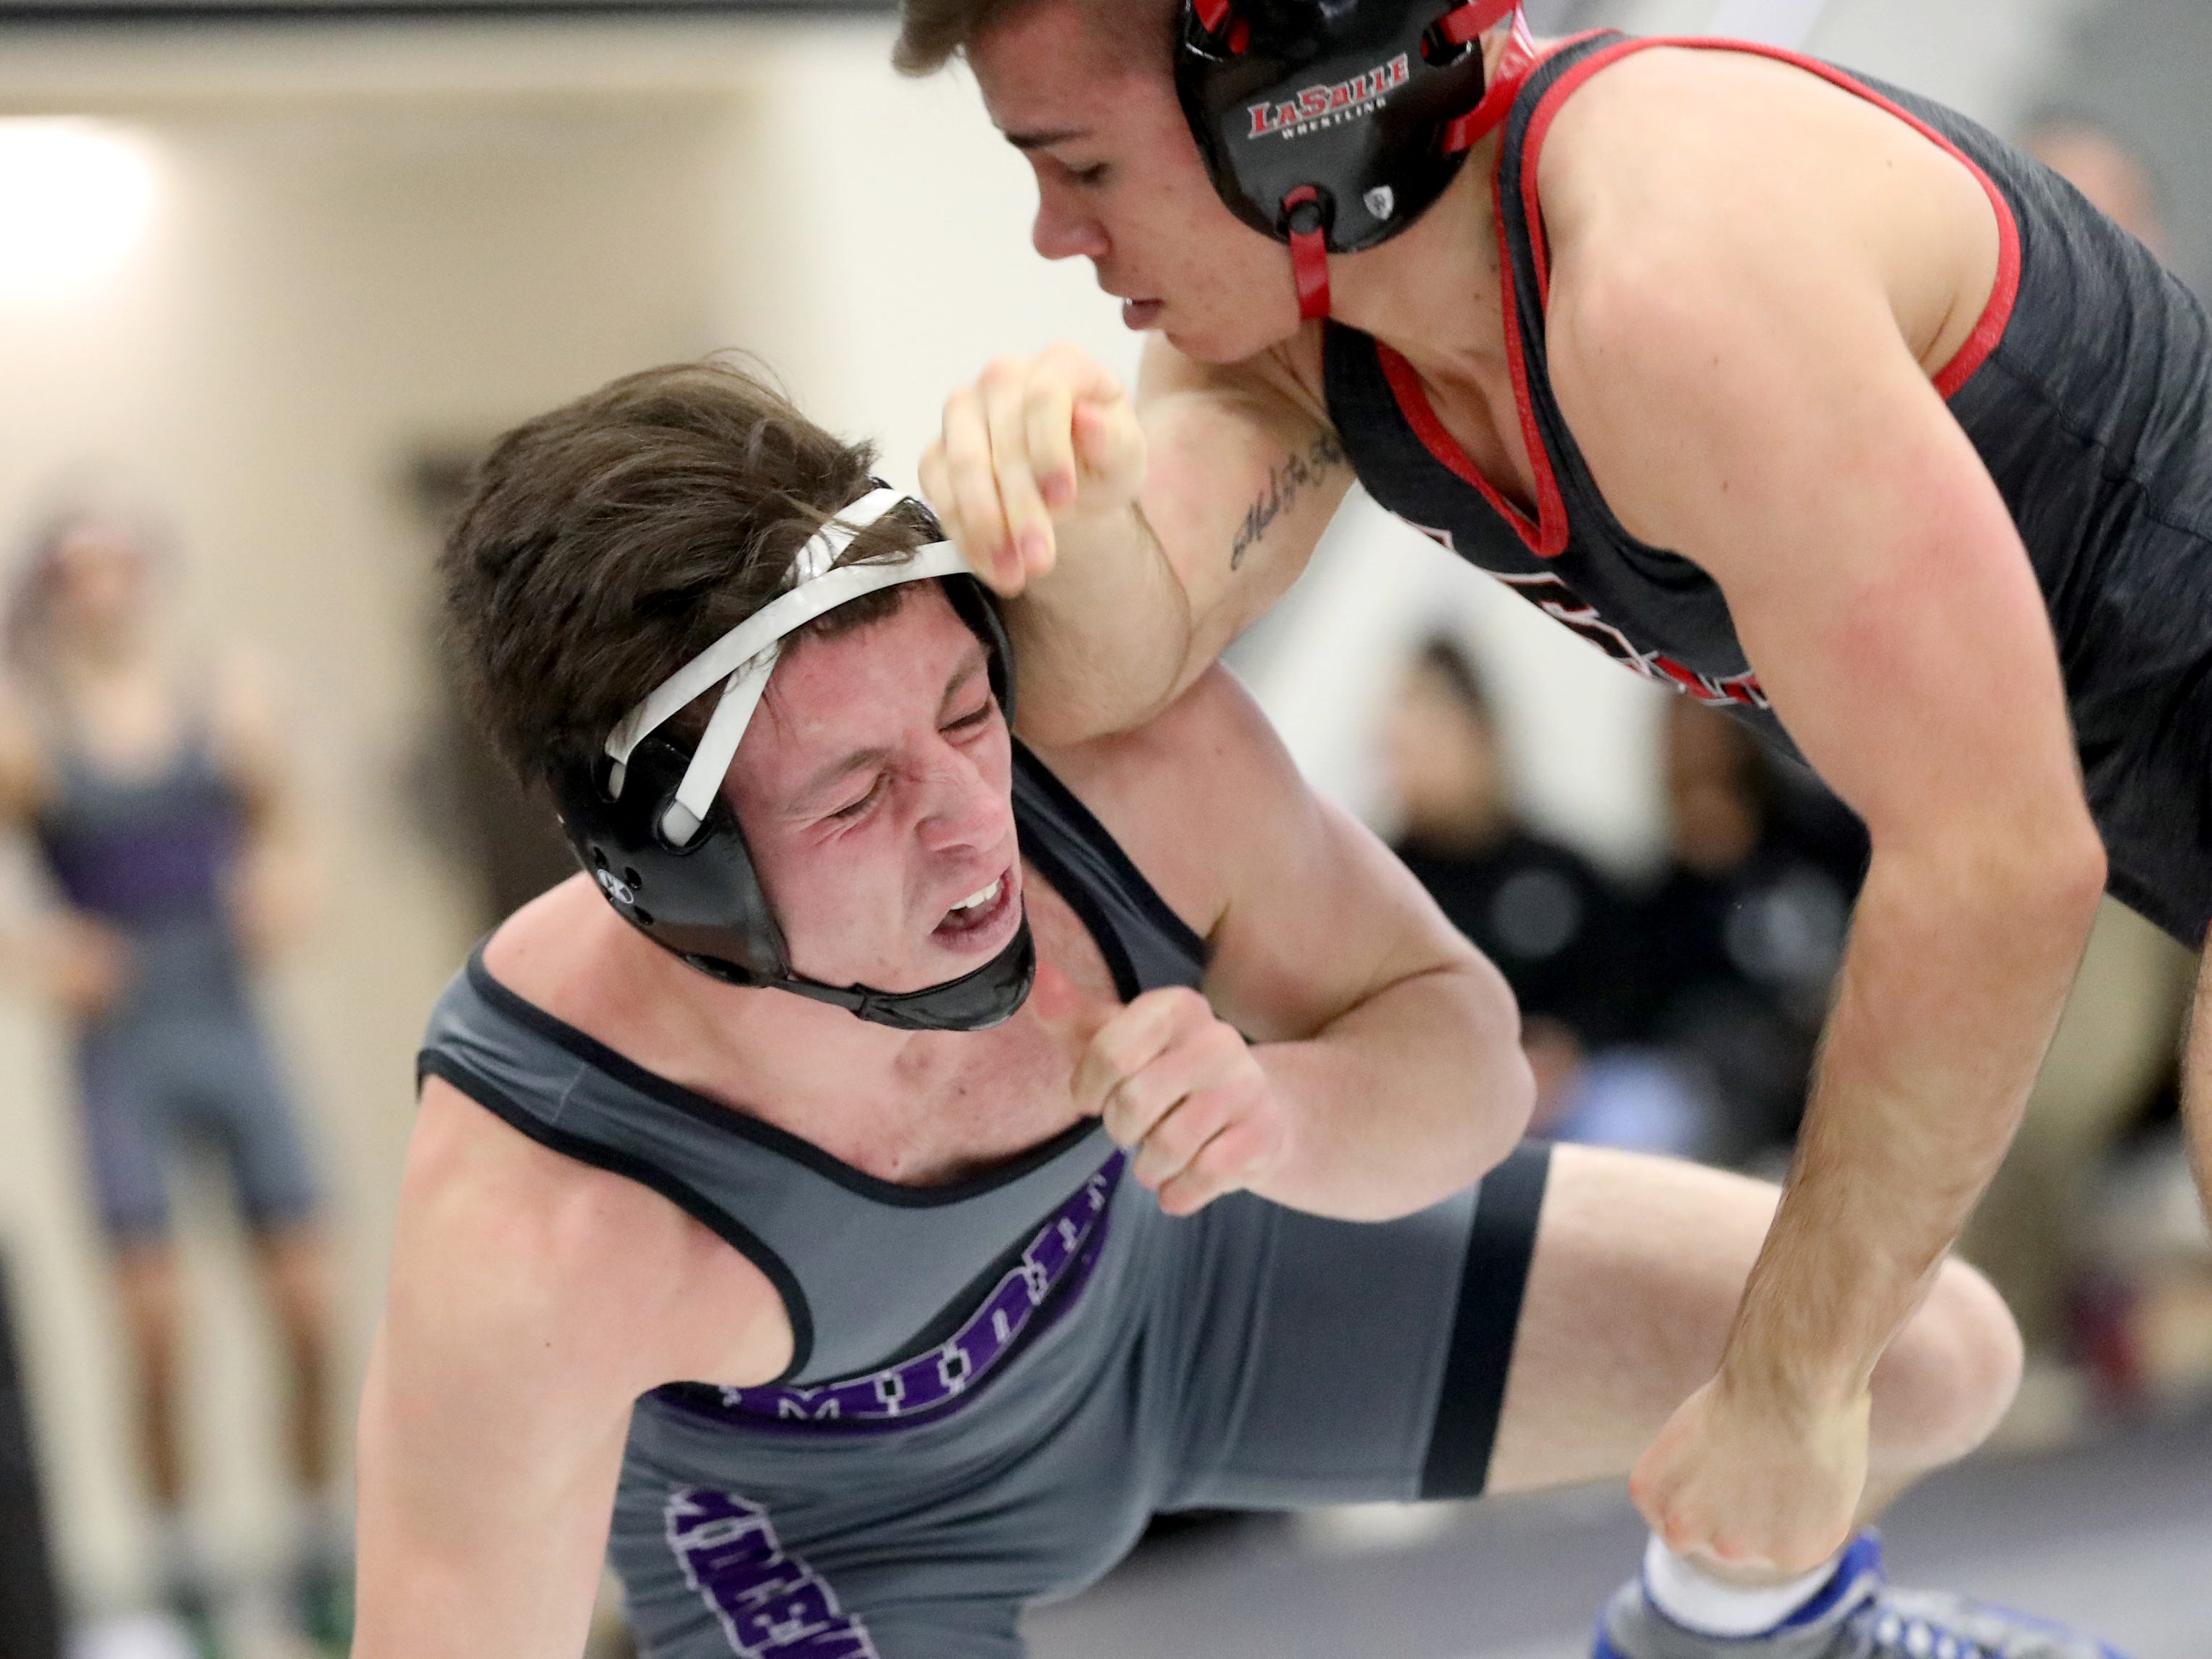 La Salle wrestler Jake Niffenegger, right, battles Middletown wrestler Aundre Zornes during the Division I team tournament at Lakota East High School, Saturday, Feb. 2, 2019.